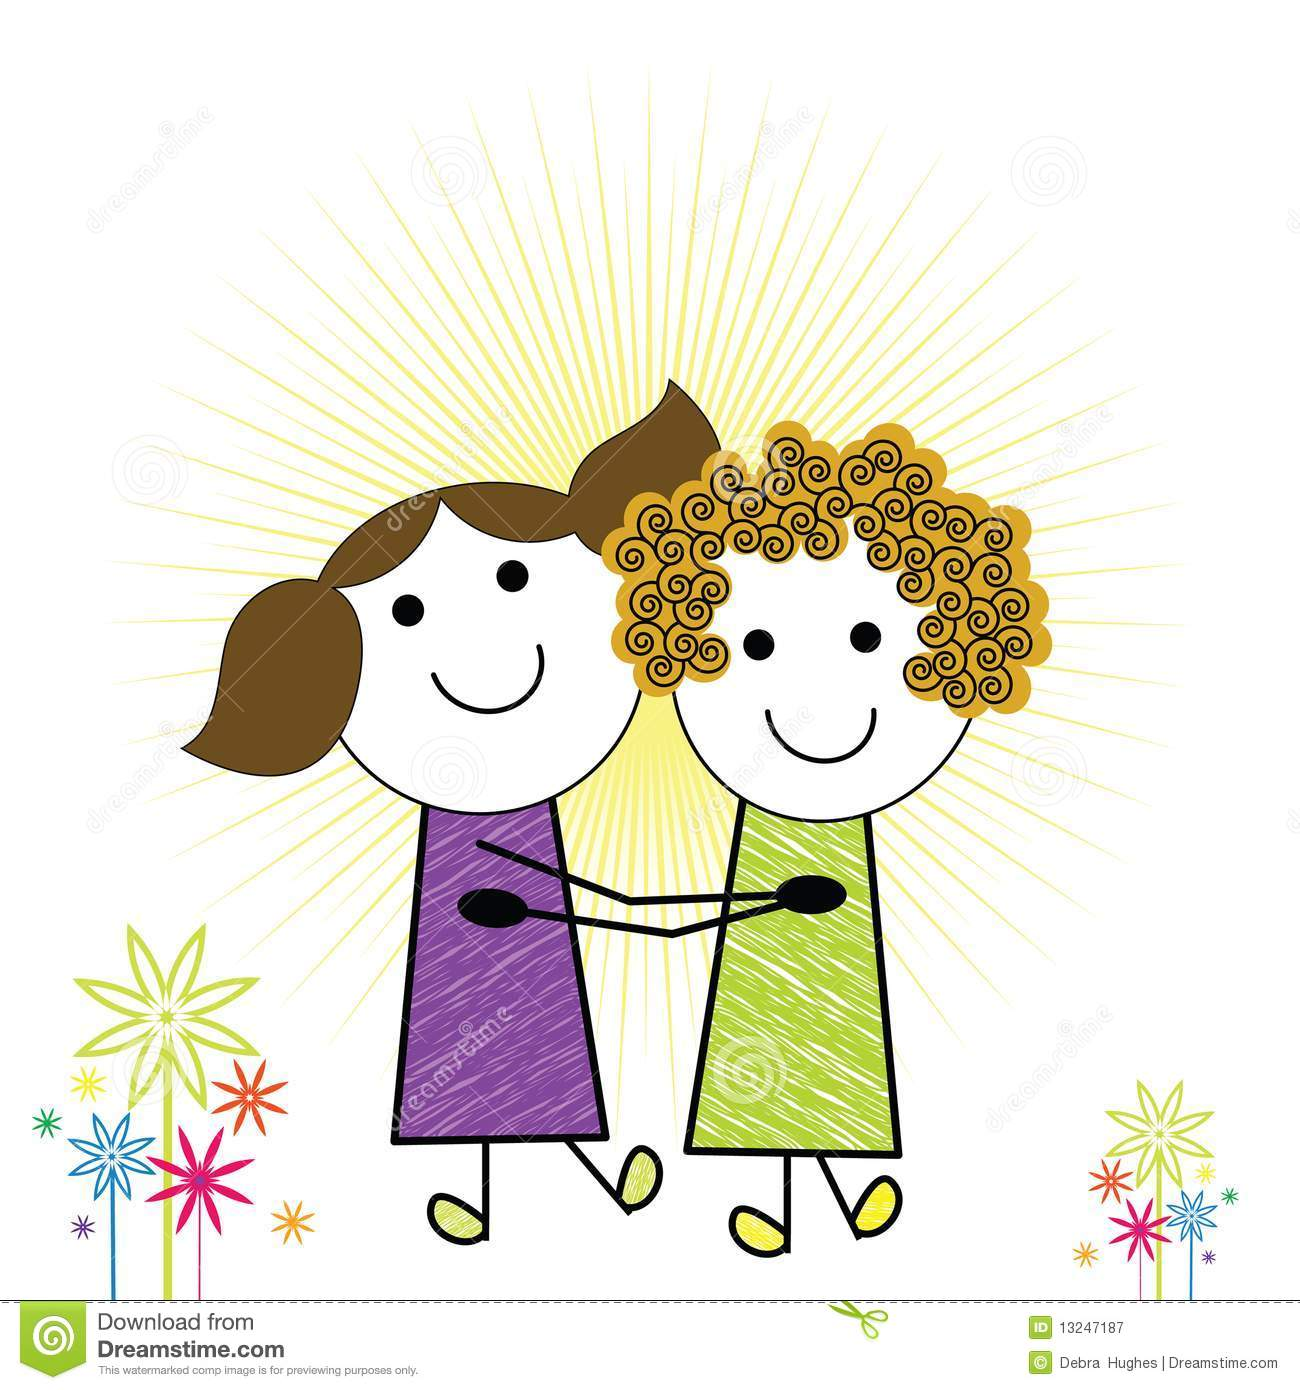 Cartoon kids royalty free stock photography image 13247187